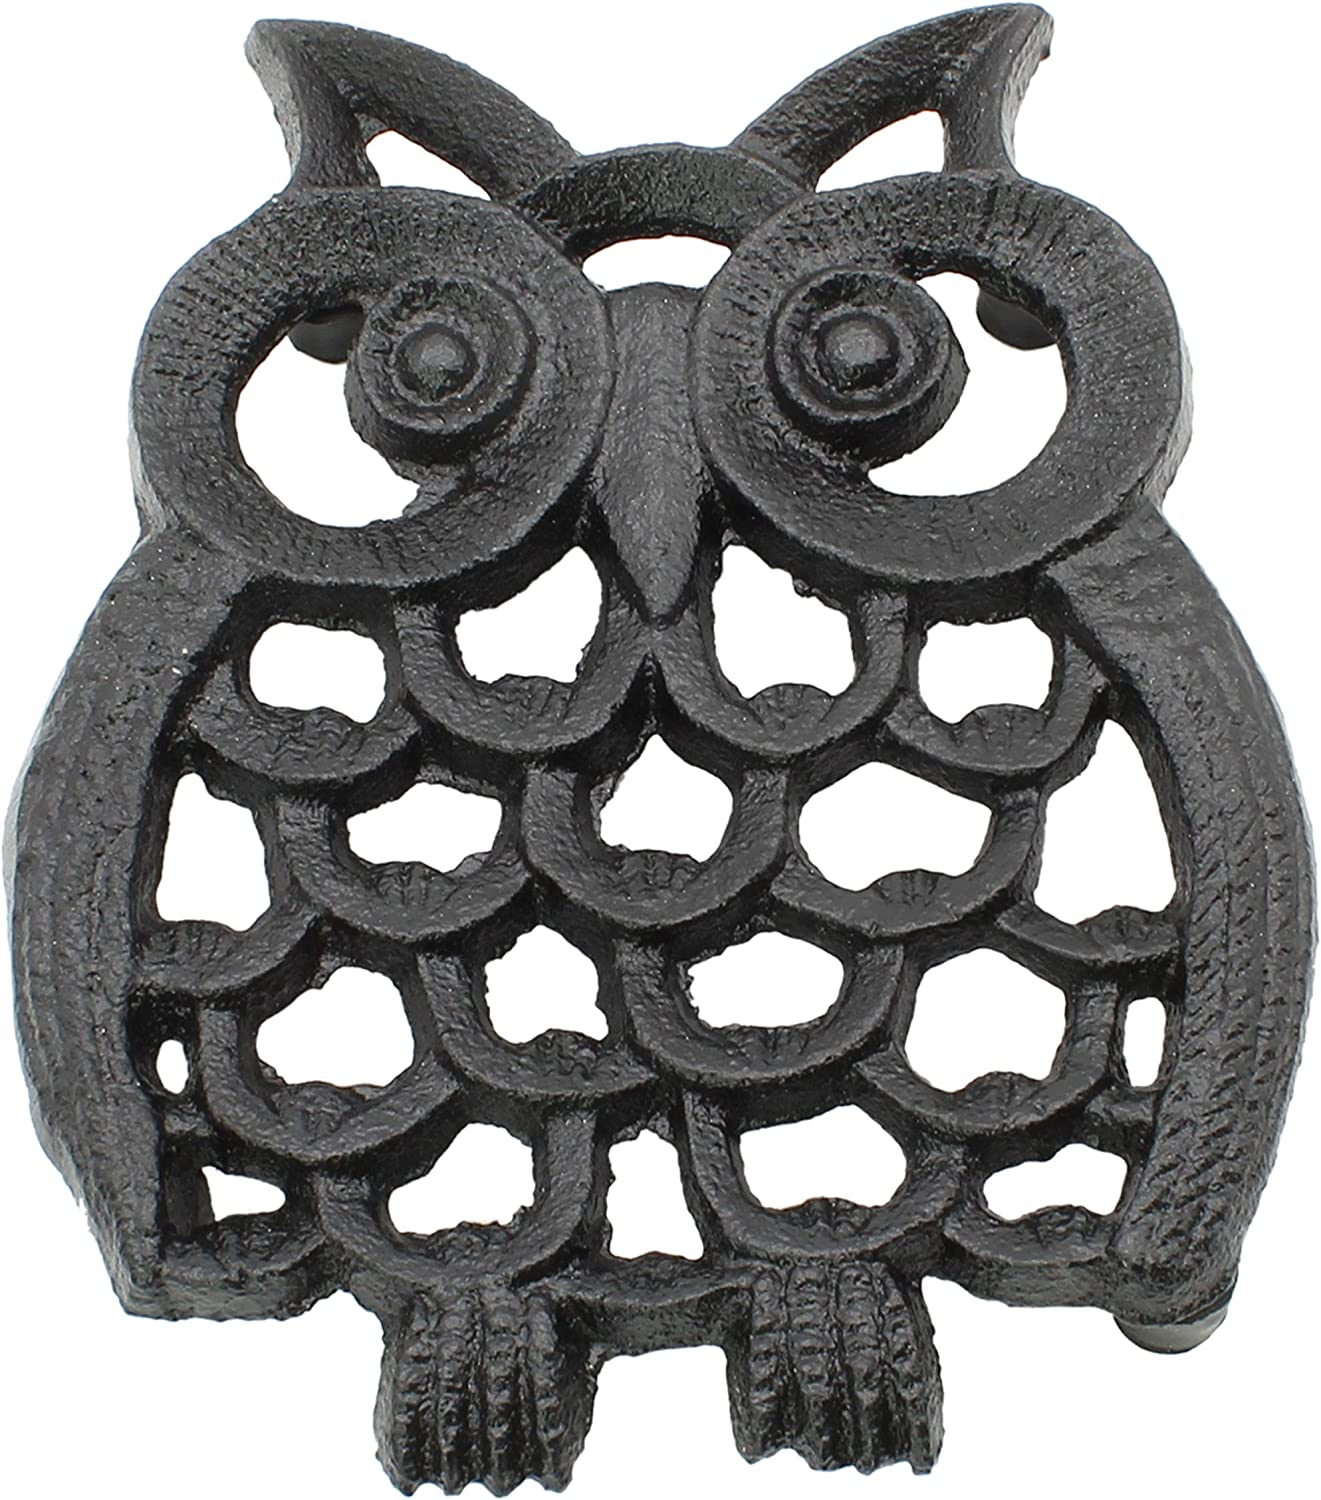 "Cast Iron Owl Trivet | Decorative Pot Pan Trivet For Kitchen Counter or Dining Table Vintage Design Trivets | Use For Teapot Casseroles Slow Cooker Crock Pot | With Rubber Feet Recycled (4.5"" x 5.5"")"